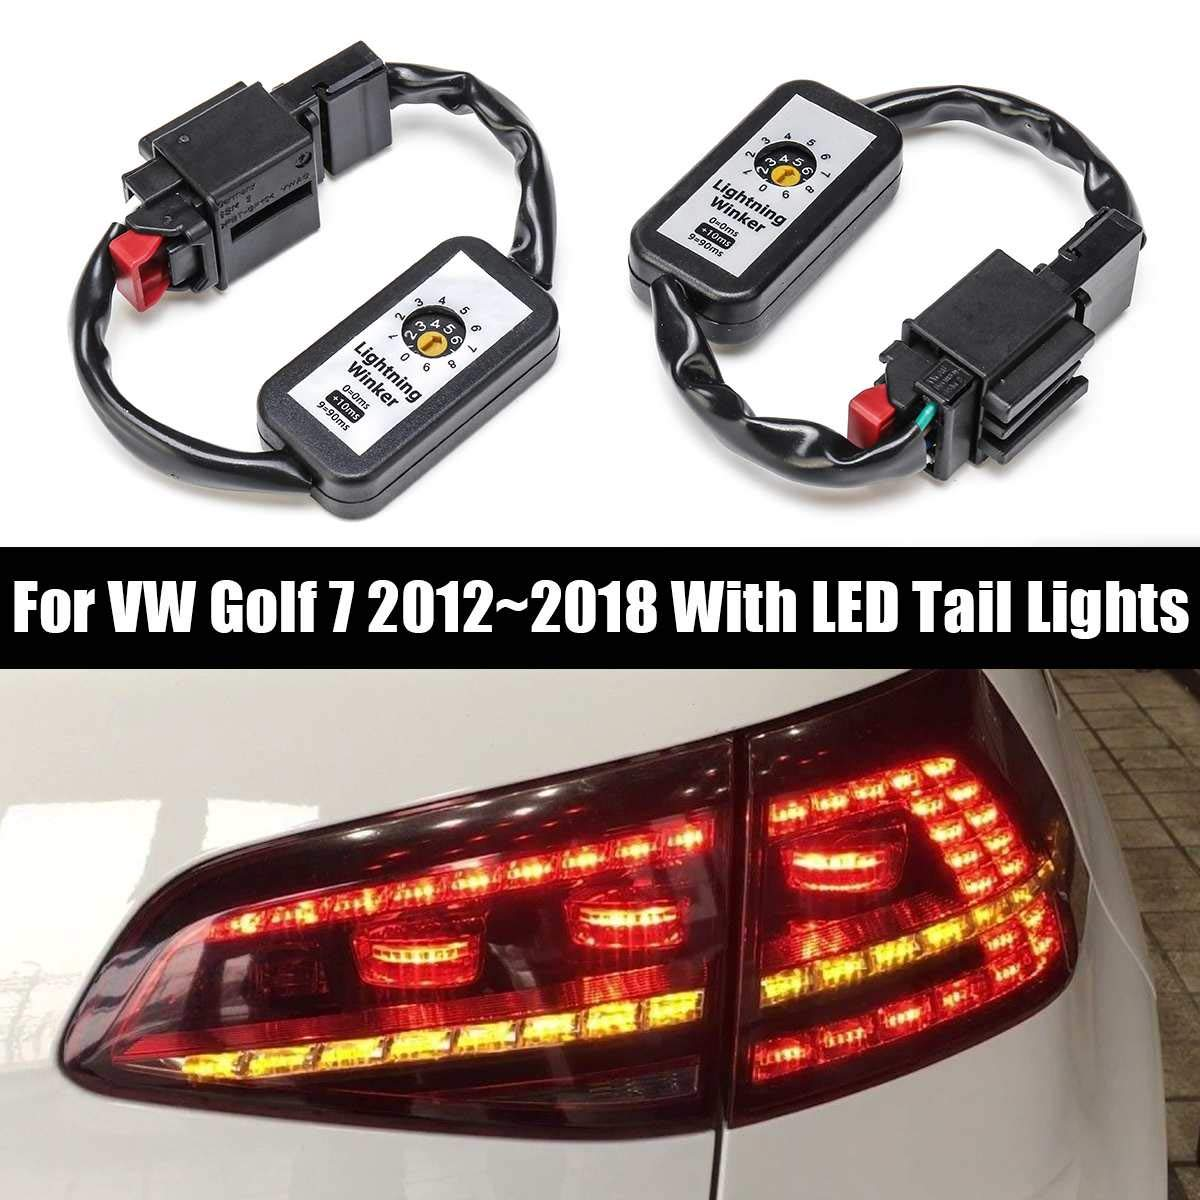 Black Dynamic Turn Signal Indicator LED Taillight Add-On Module Cable Wire Harness For Golf 7 Left & Right Tail Light 2Pcs